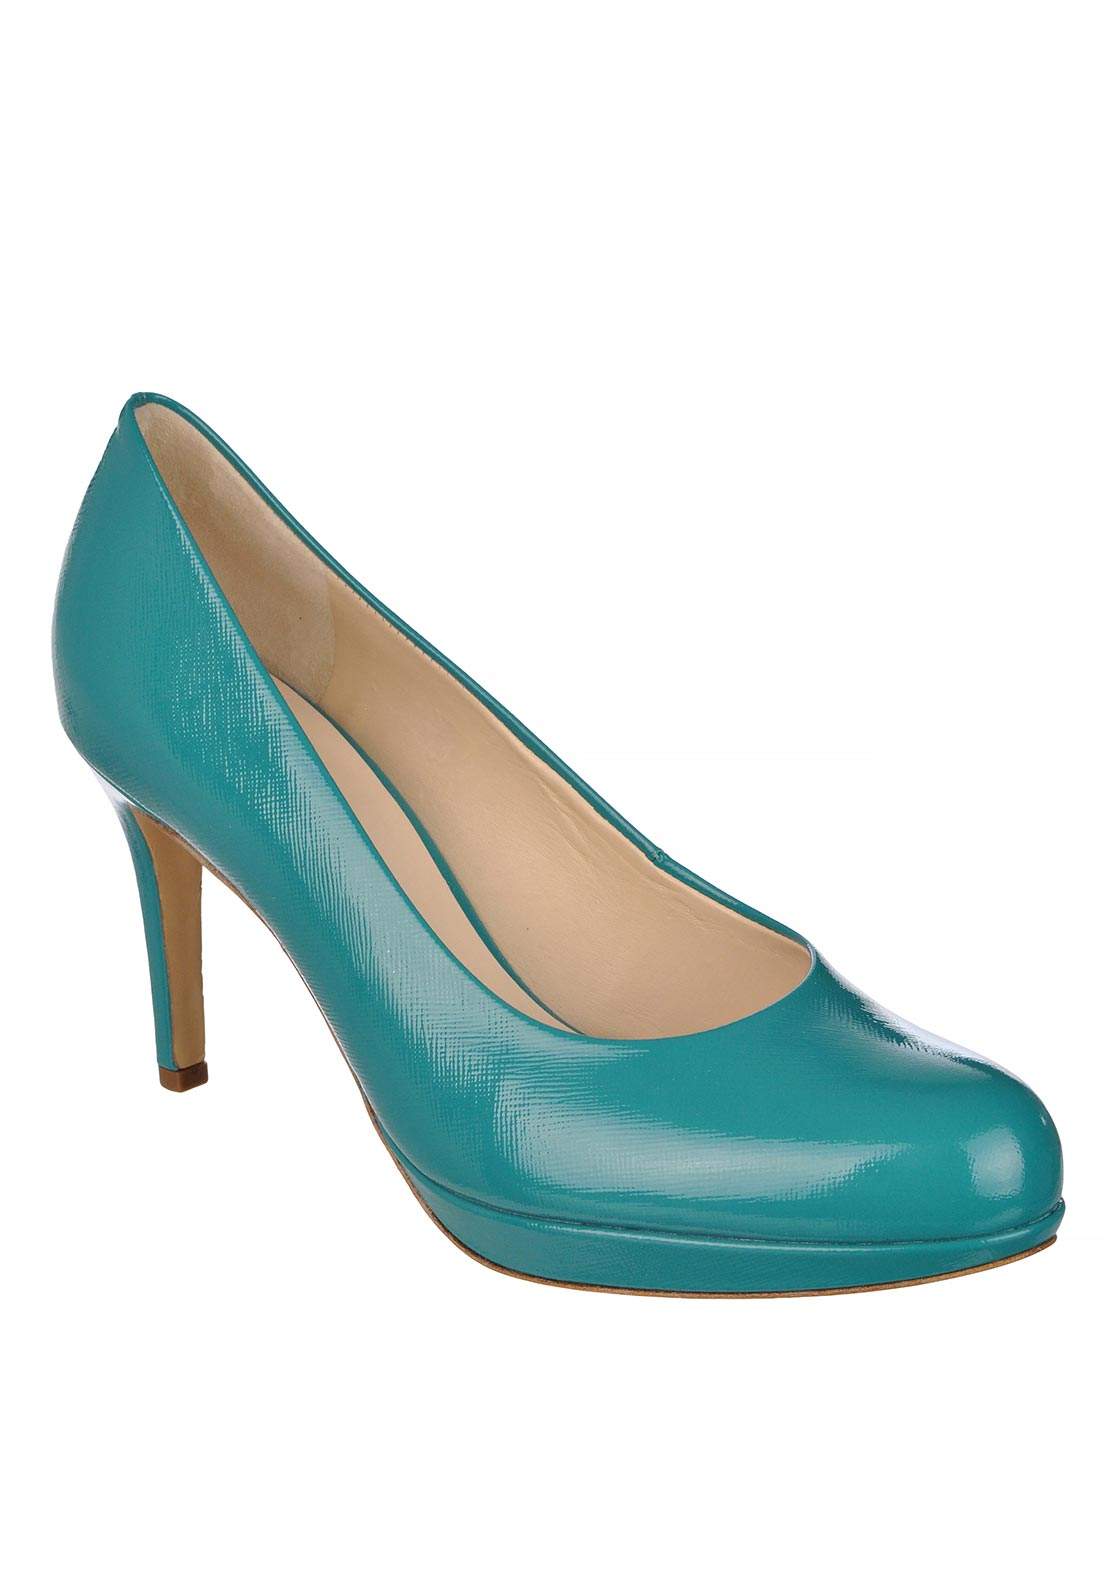 Hogl Womens Leather Patent Heeled Shoes, Turquoise